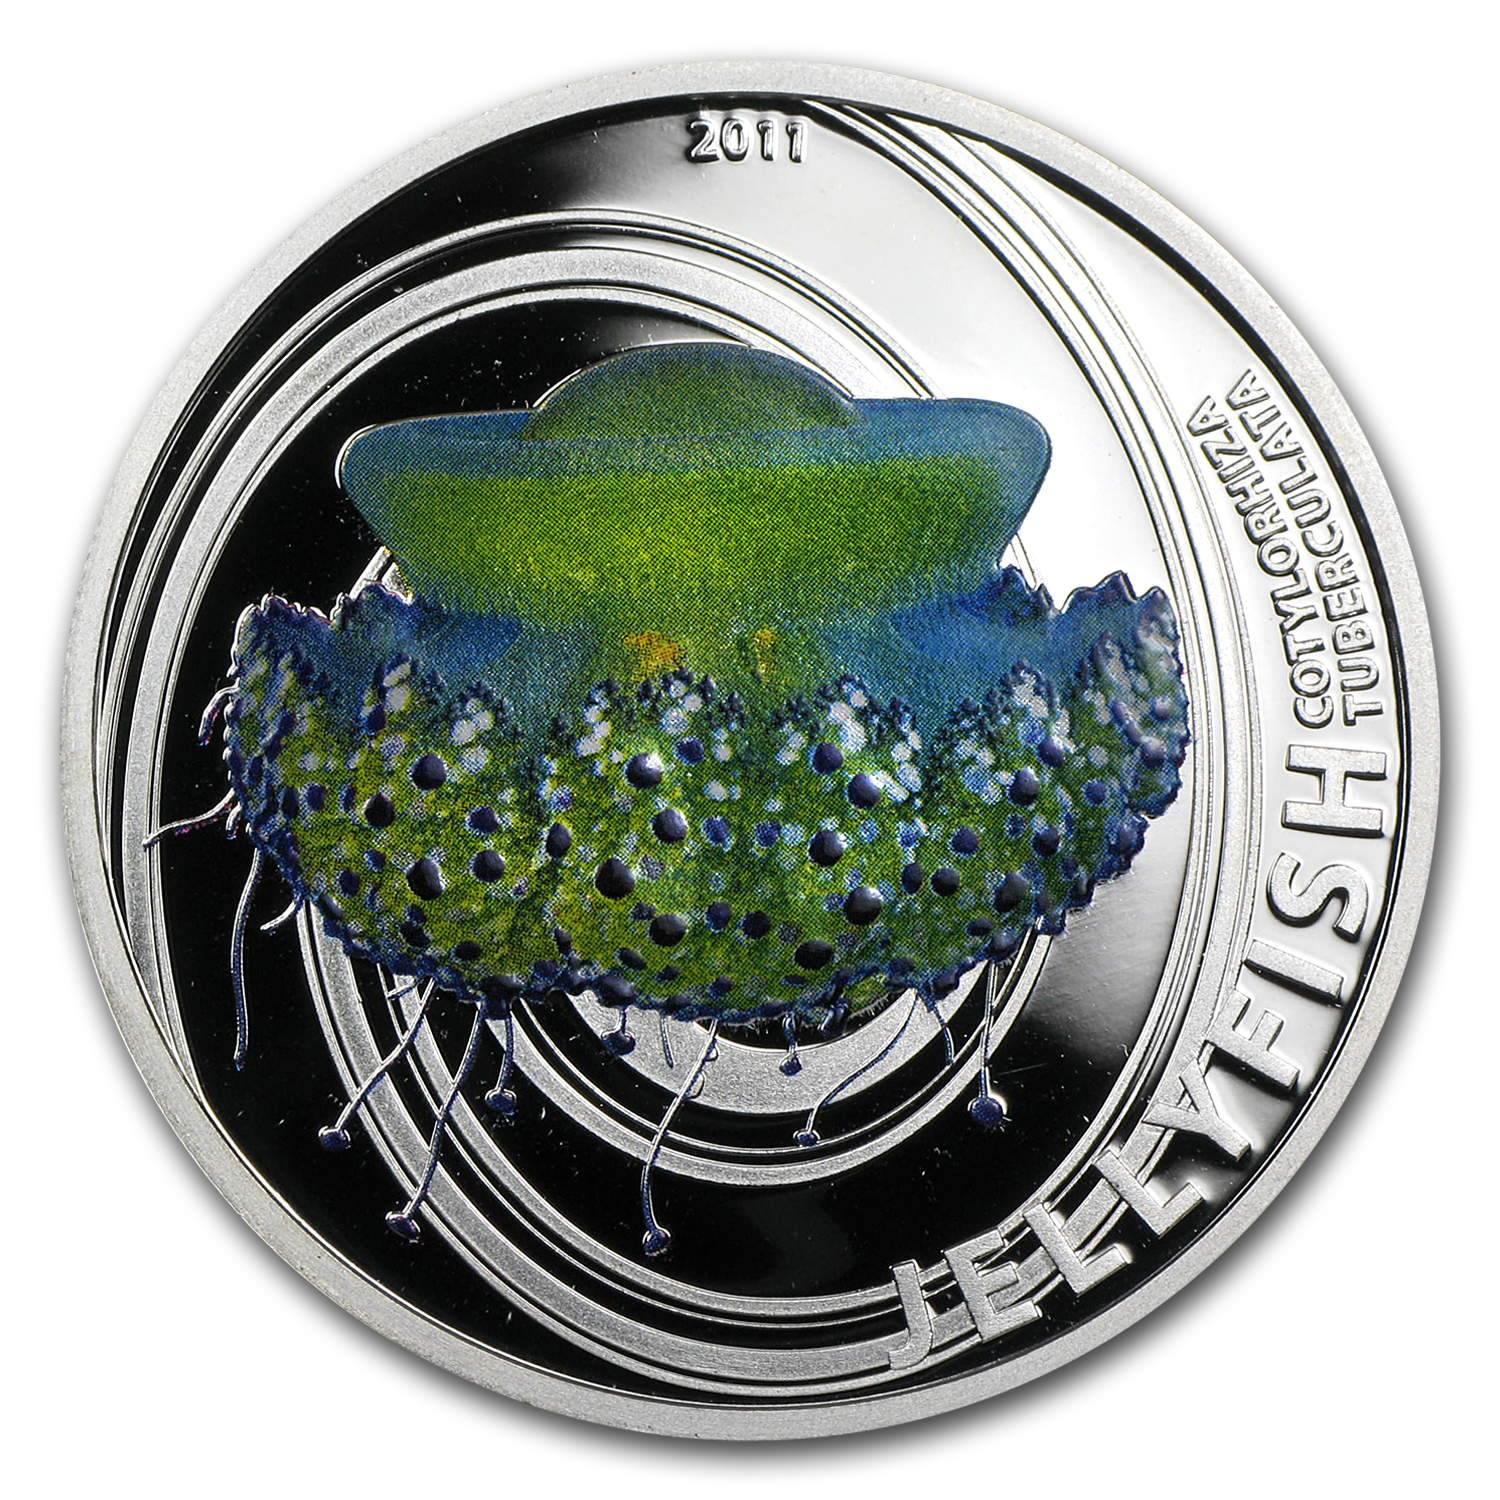 Pitcairn Islands 2011 Silver $2 Jellyfish - Cotylorhiza Tubercula